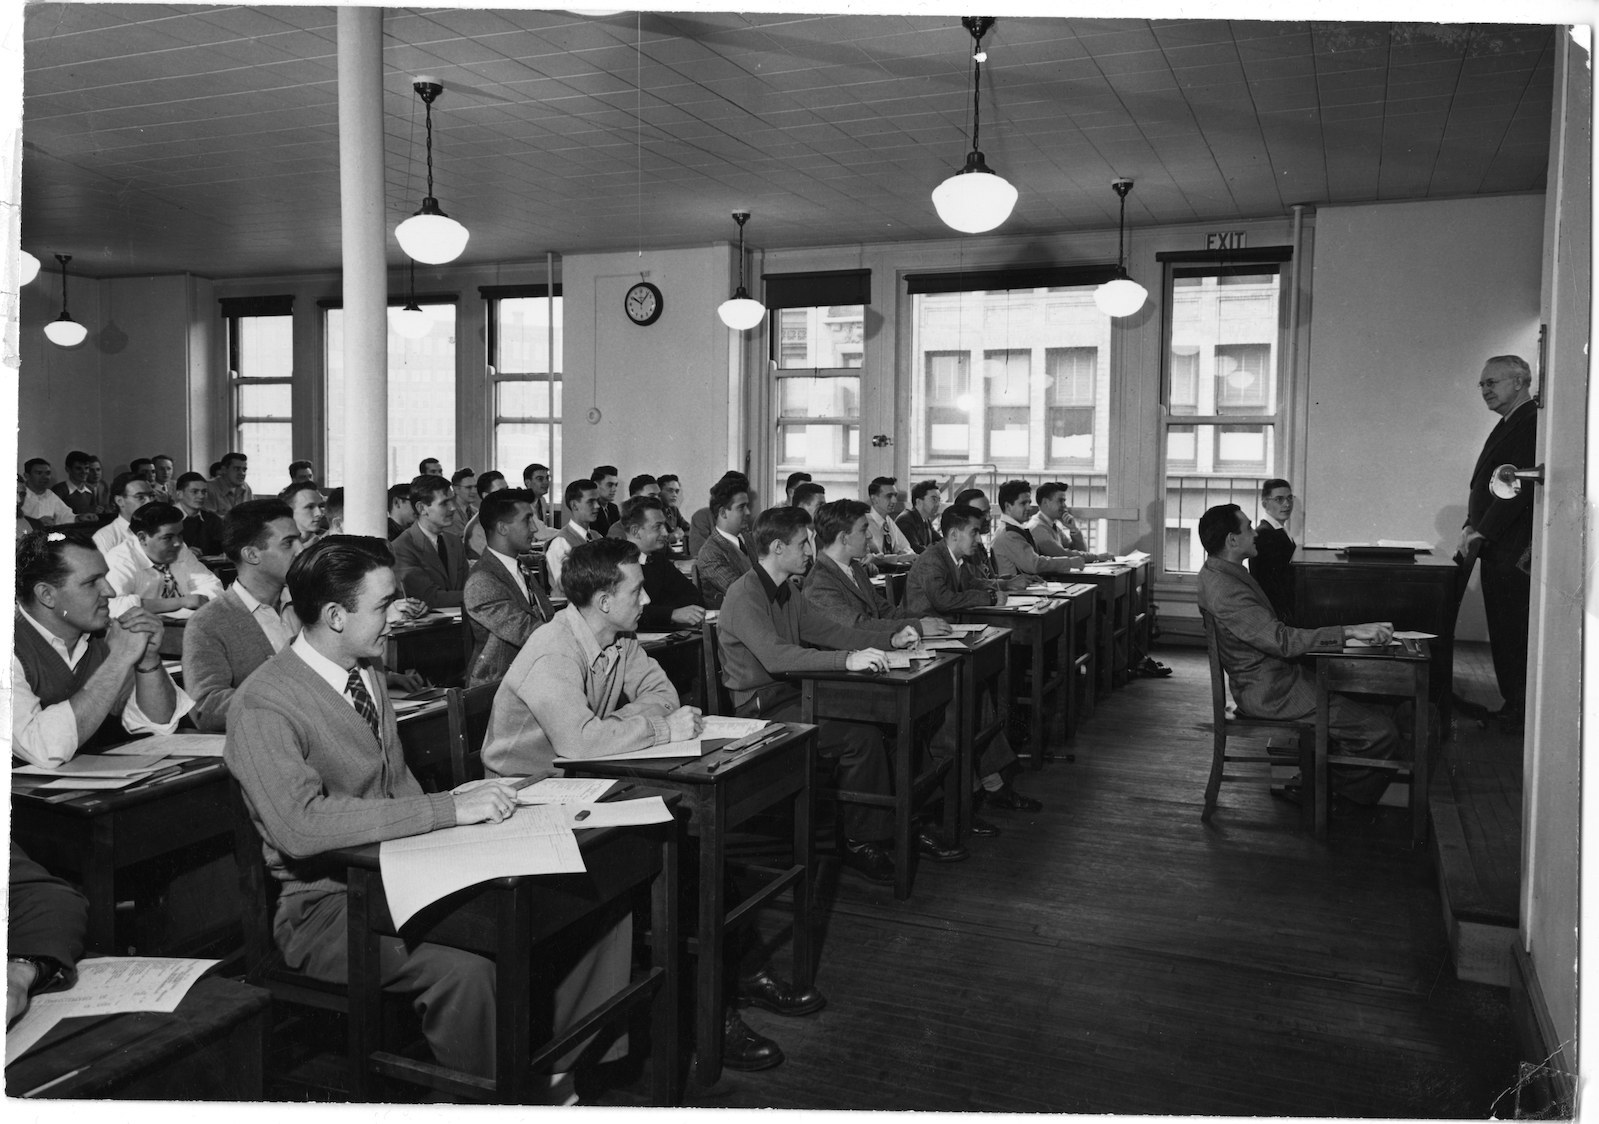 A group of male students, seated at desks in a classroom, presumably in one of the Boylston Street buildings on the Boston campus.